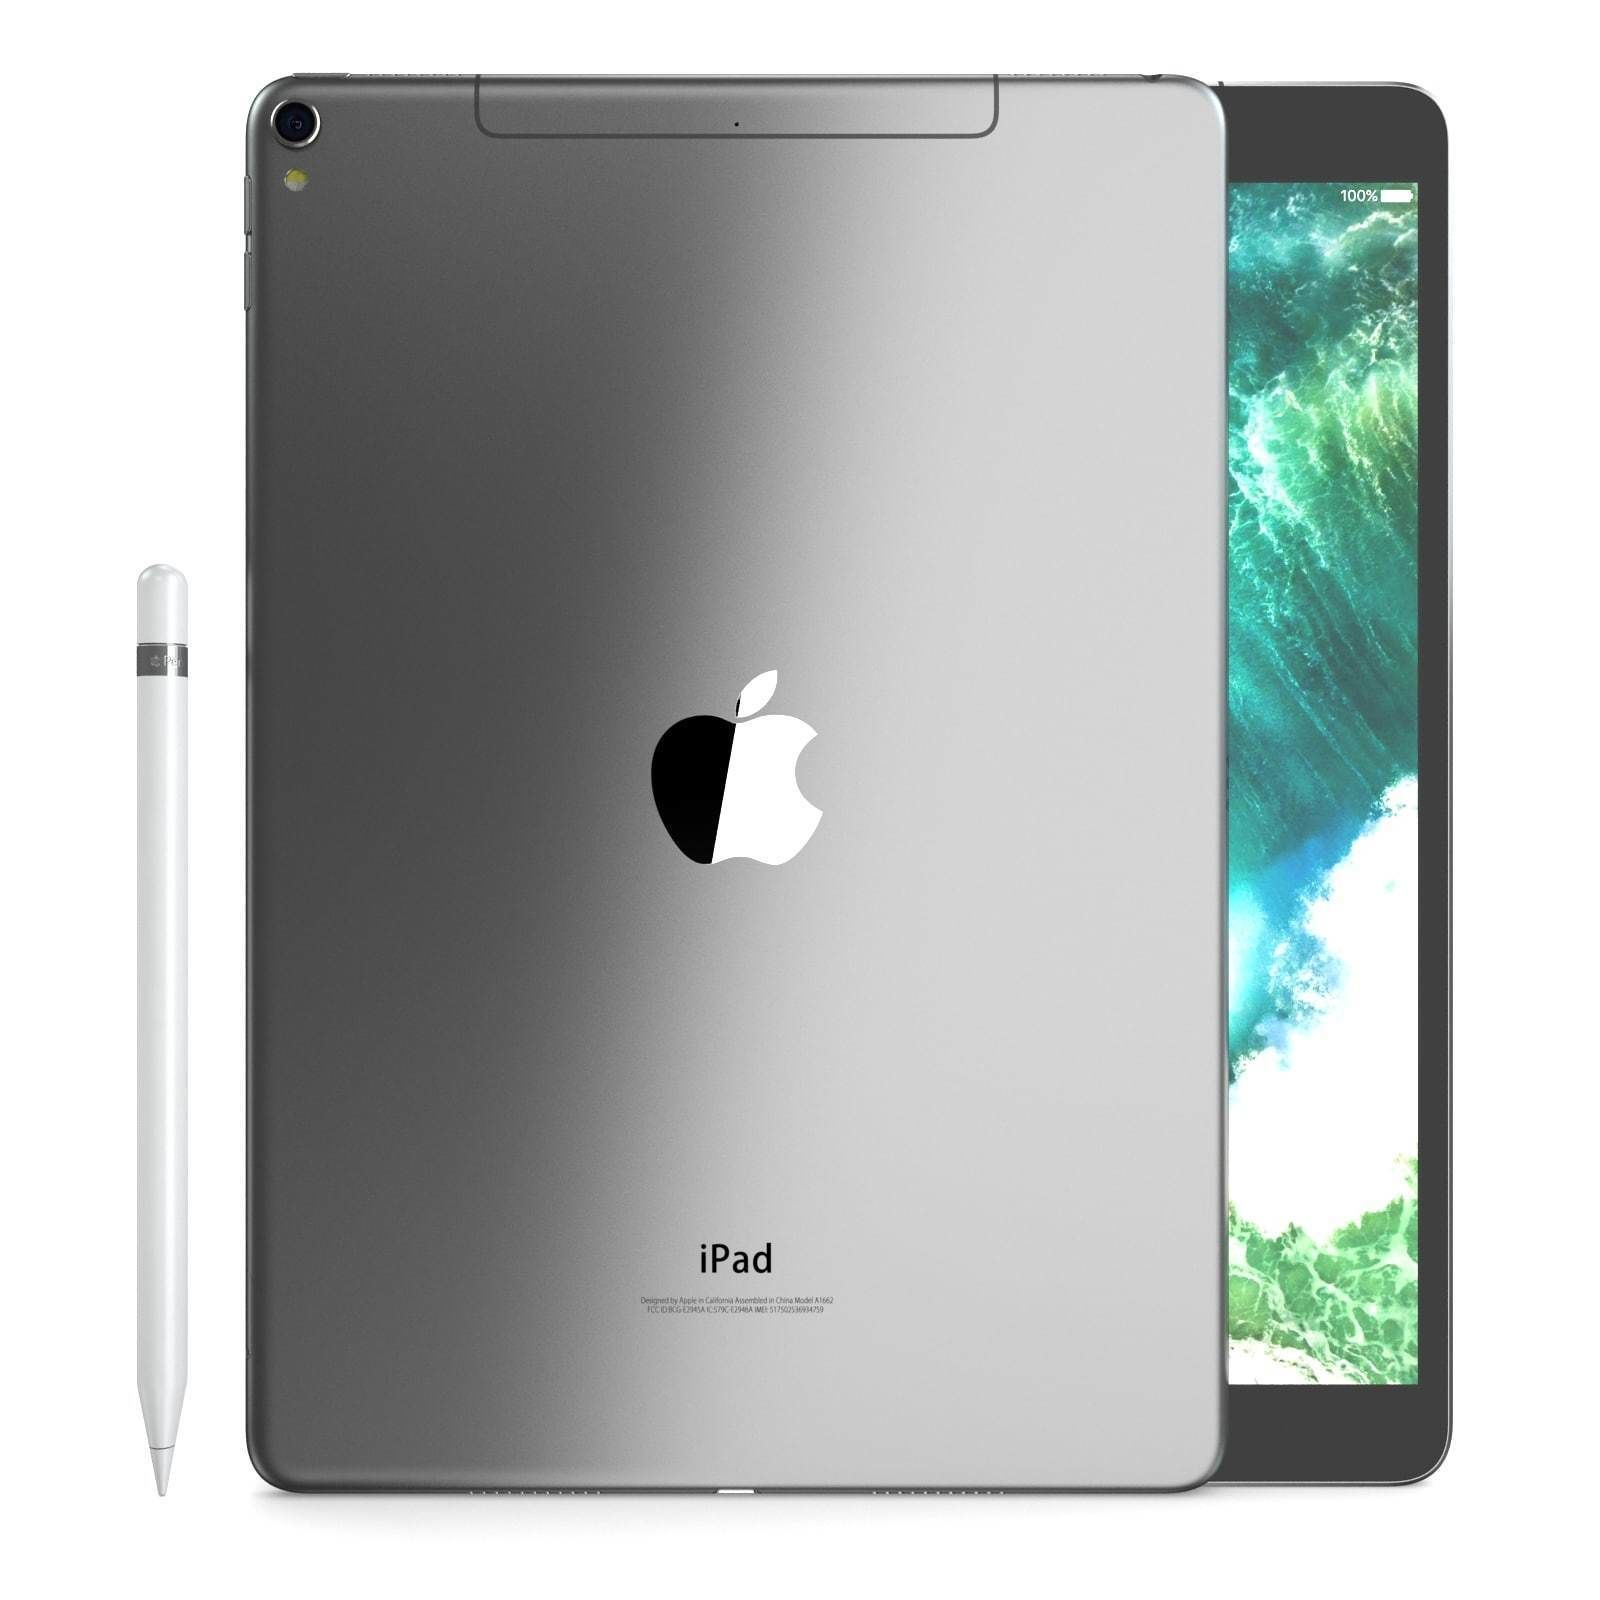 E3d Ipad Pro 10 5 Inch Cellular Space Grey 3d Model